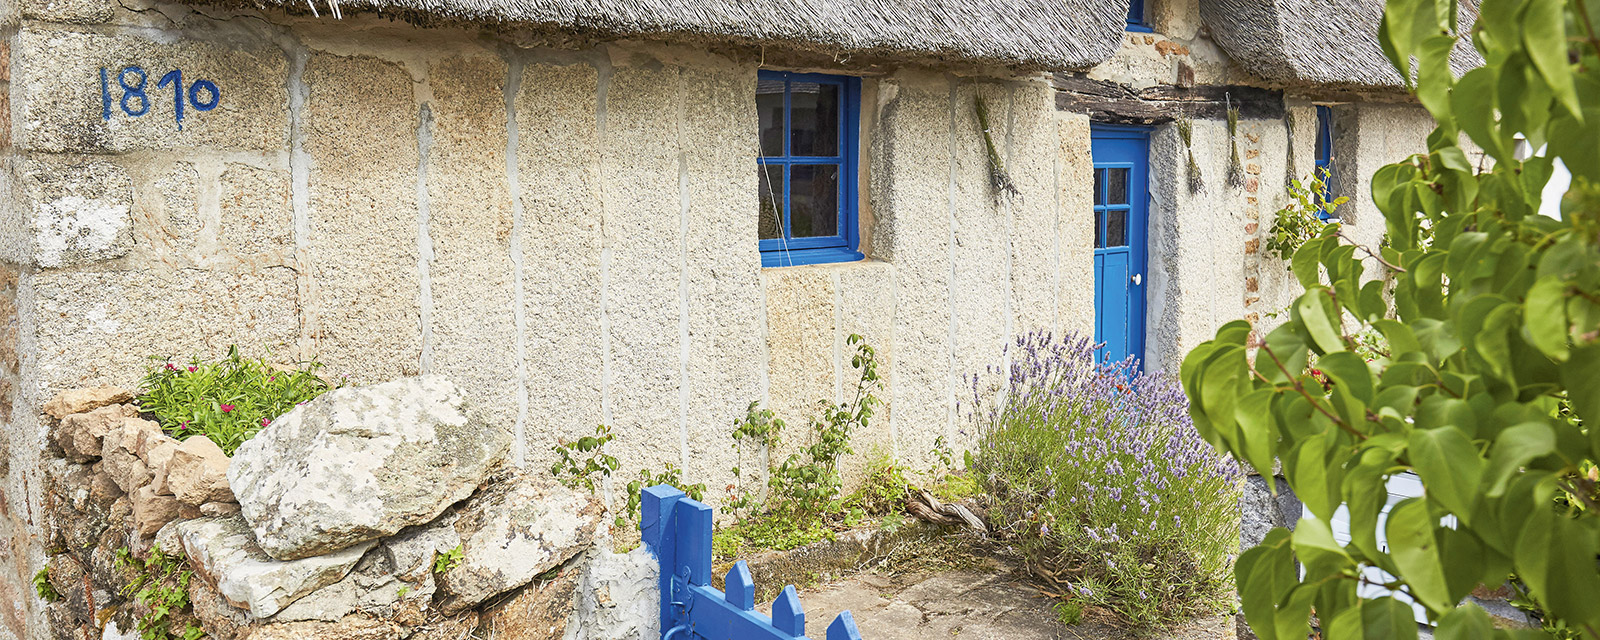 The thatched house of Ben Aven